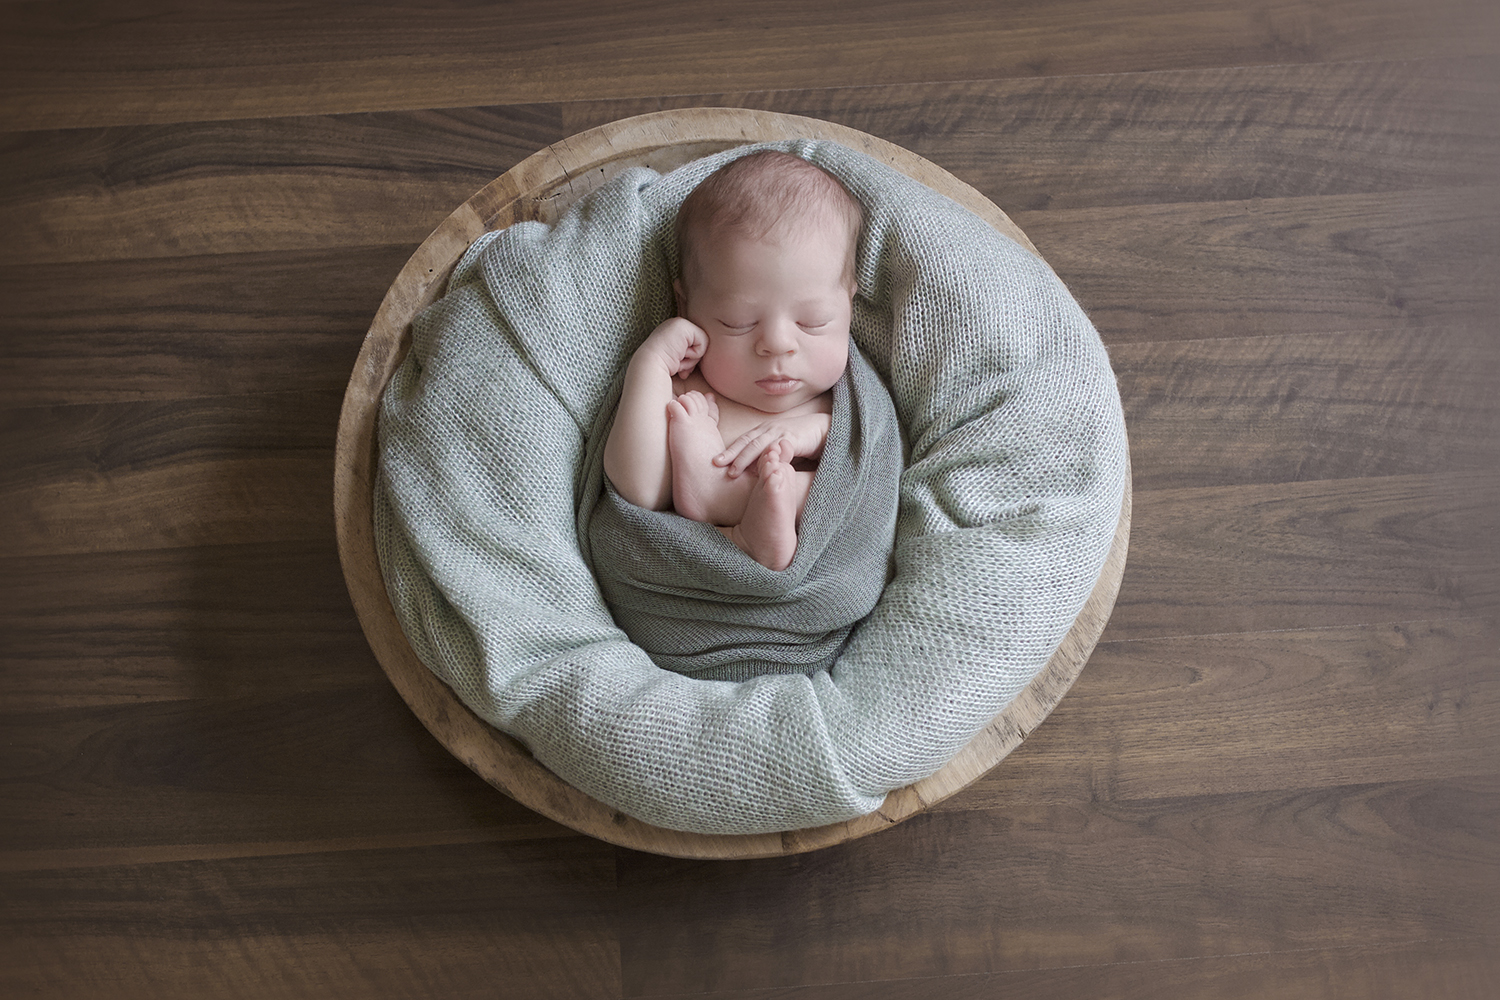 Newborn baby boy sleeping in round wooden bowl with mint blanket and wrap